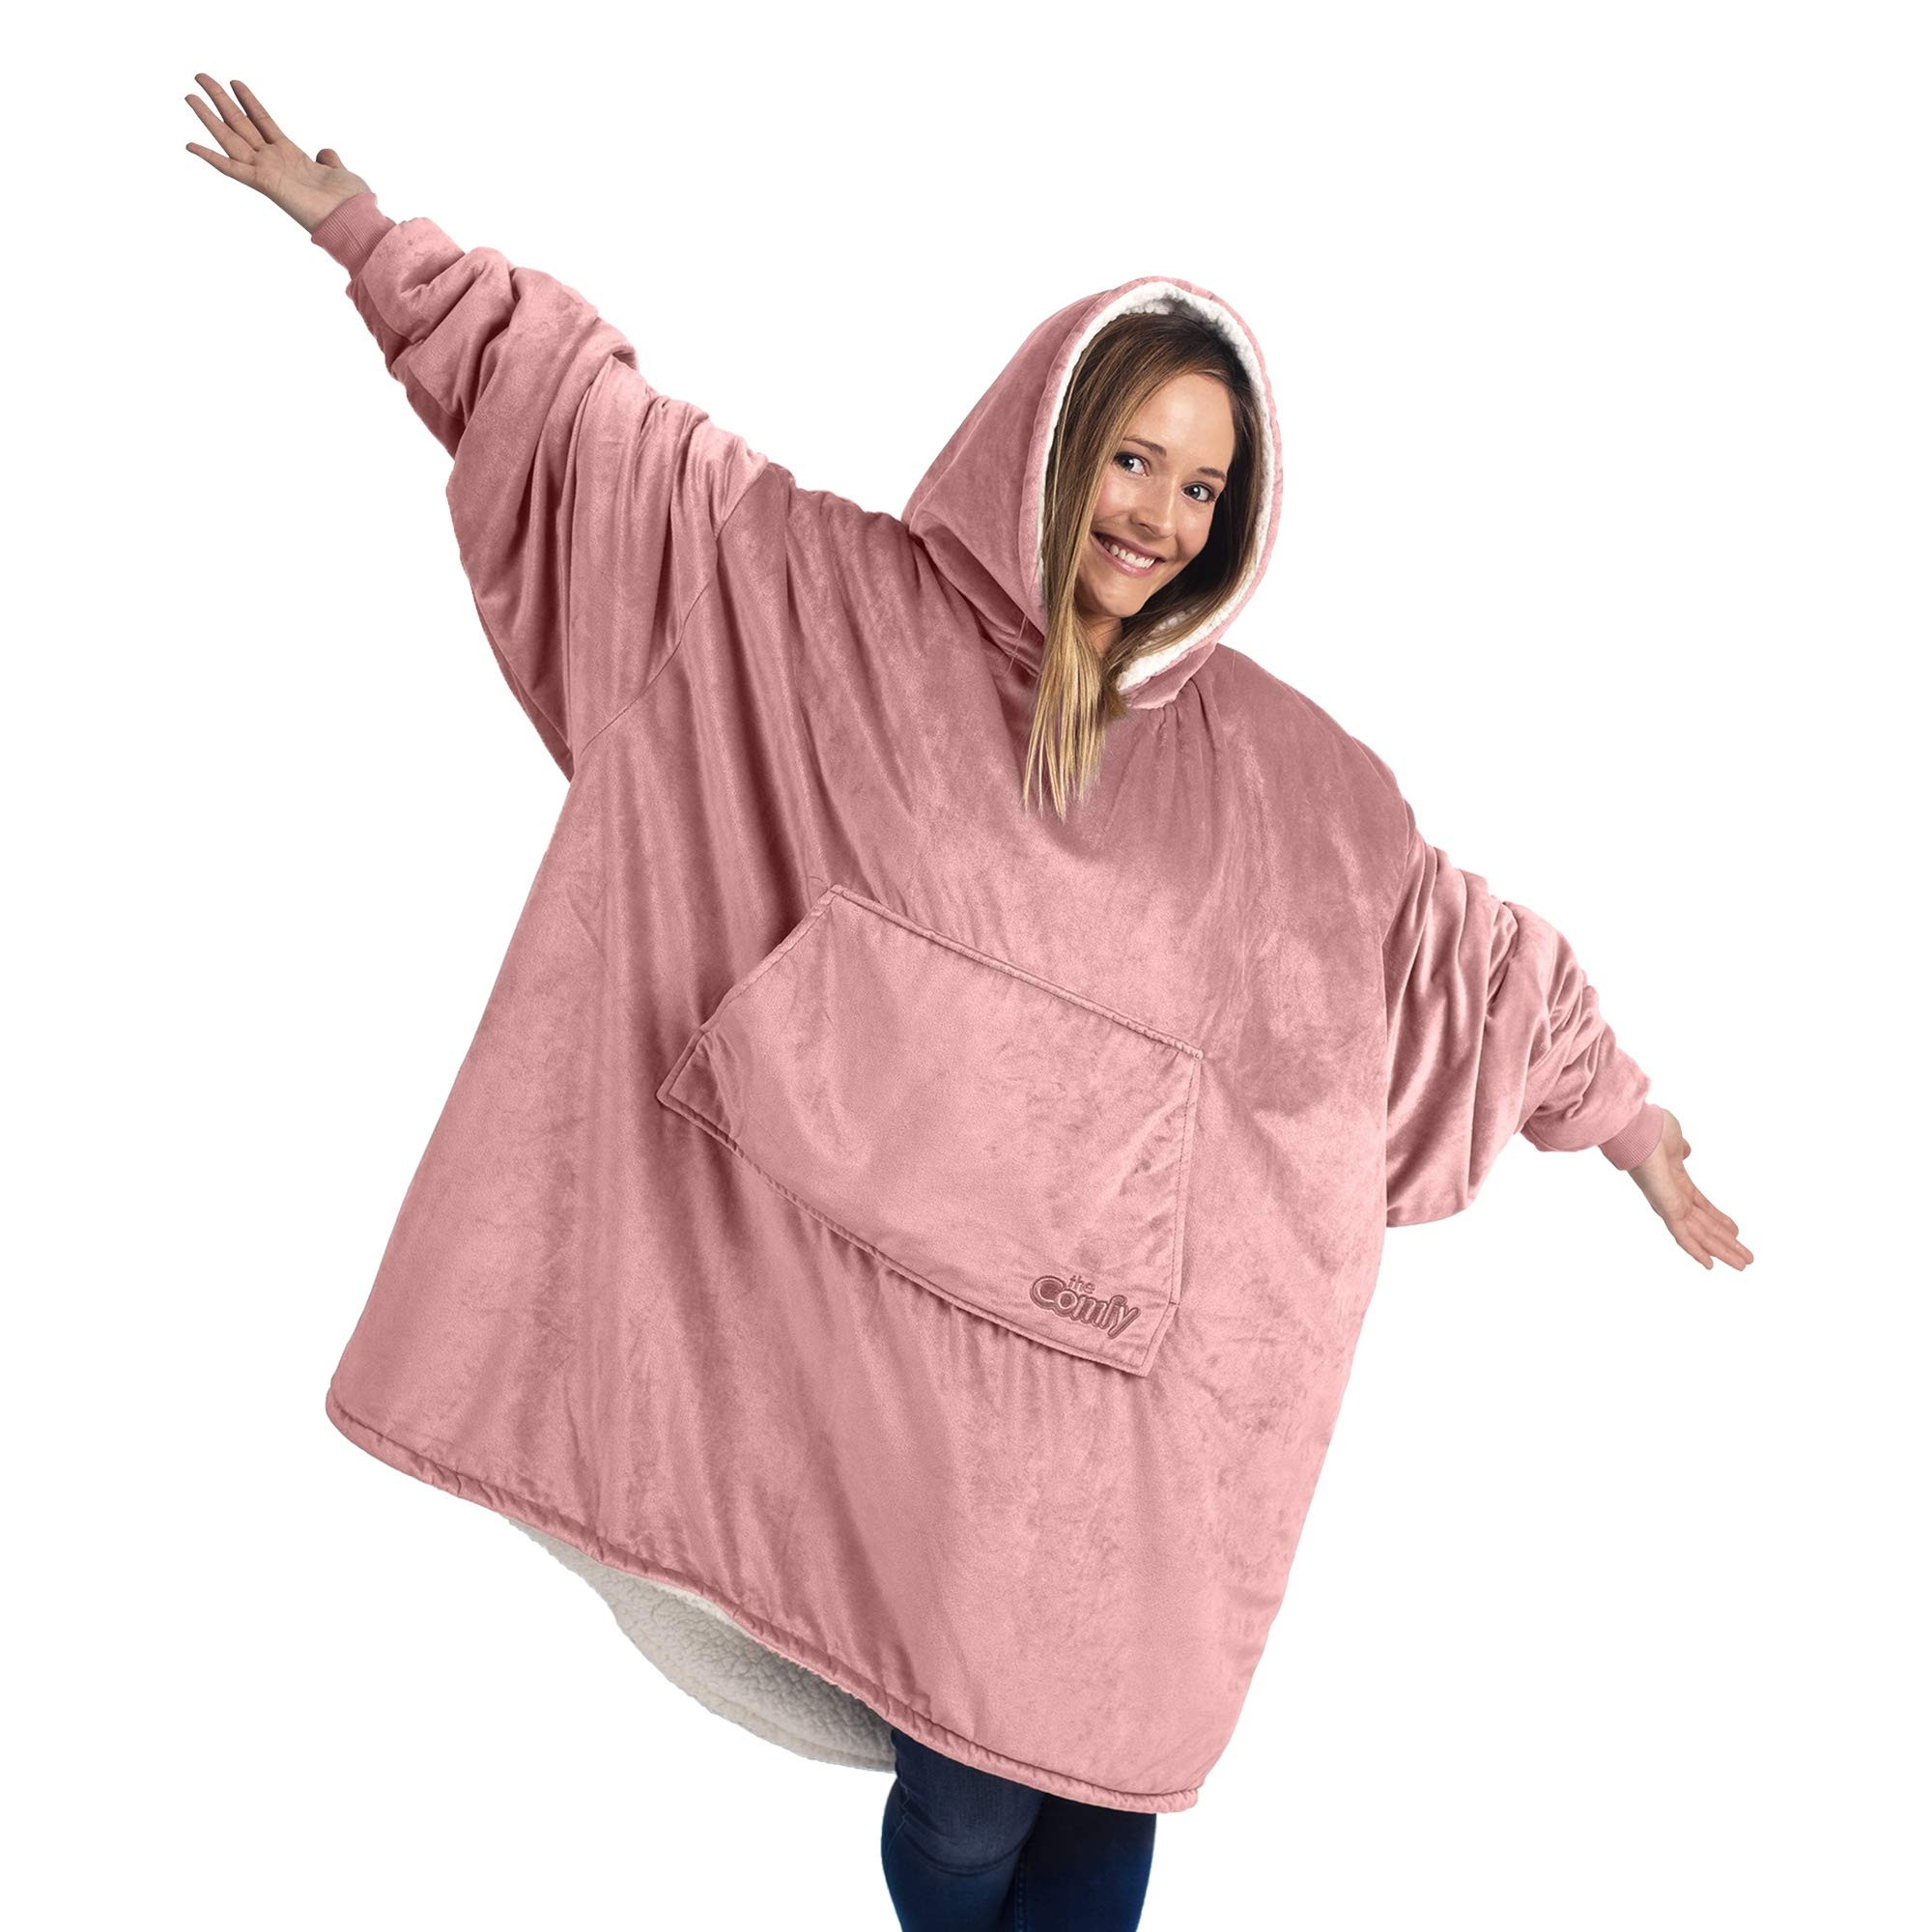 THE COMFY: Original Blanket Sweatshirt, Seen on Shark Tank, Invented by 2 Brothers, Warm, Soft, Cozy, Multiple Colors, 1 Size Fits All, Women, Wife, Girls, Friends (Blush) by THE COMFY